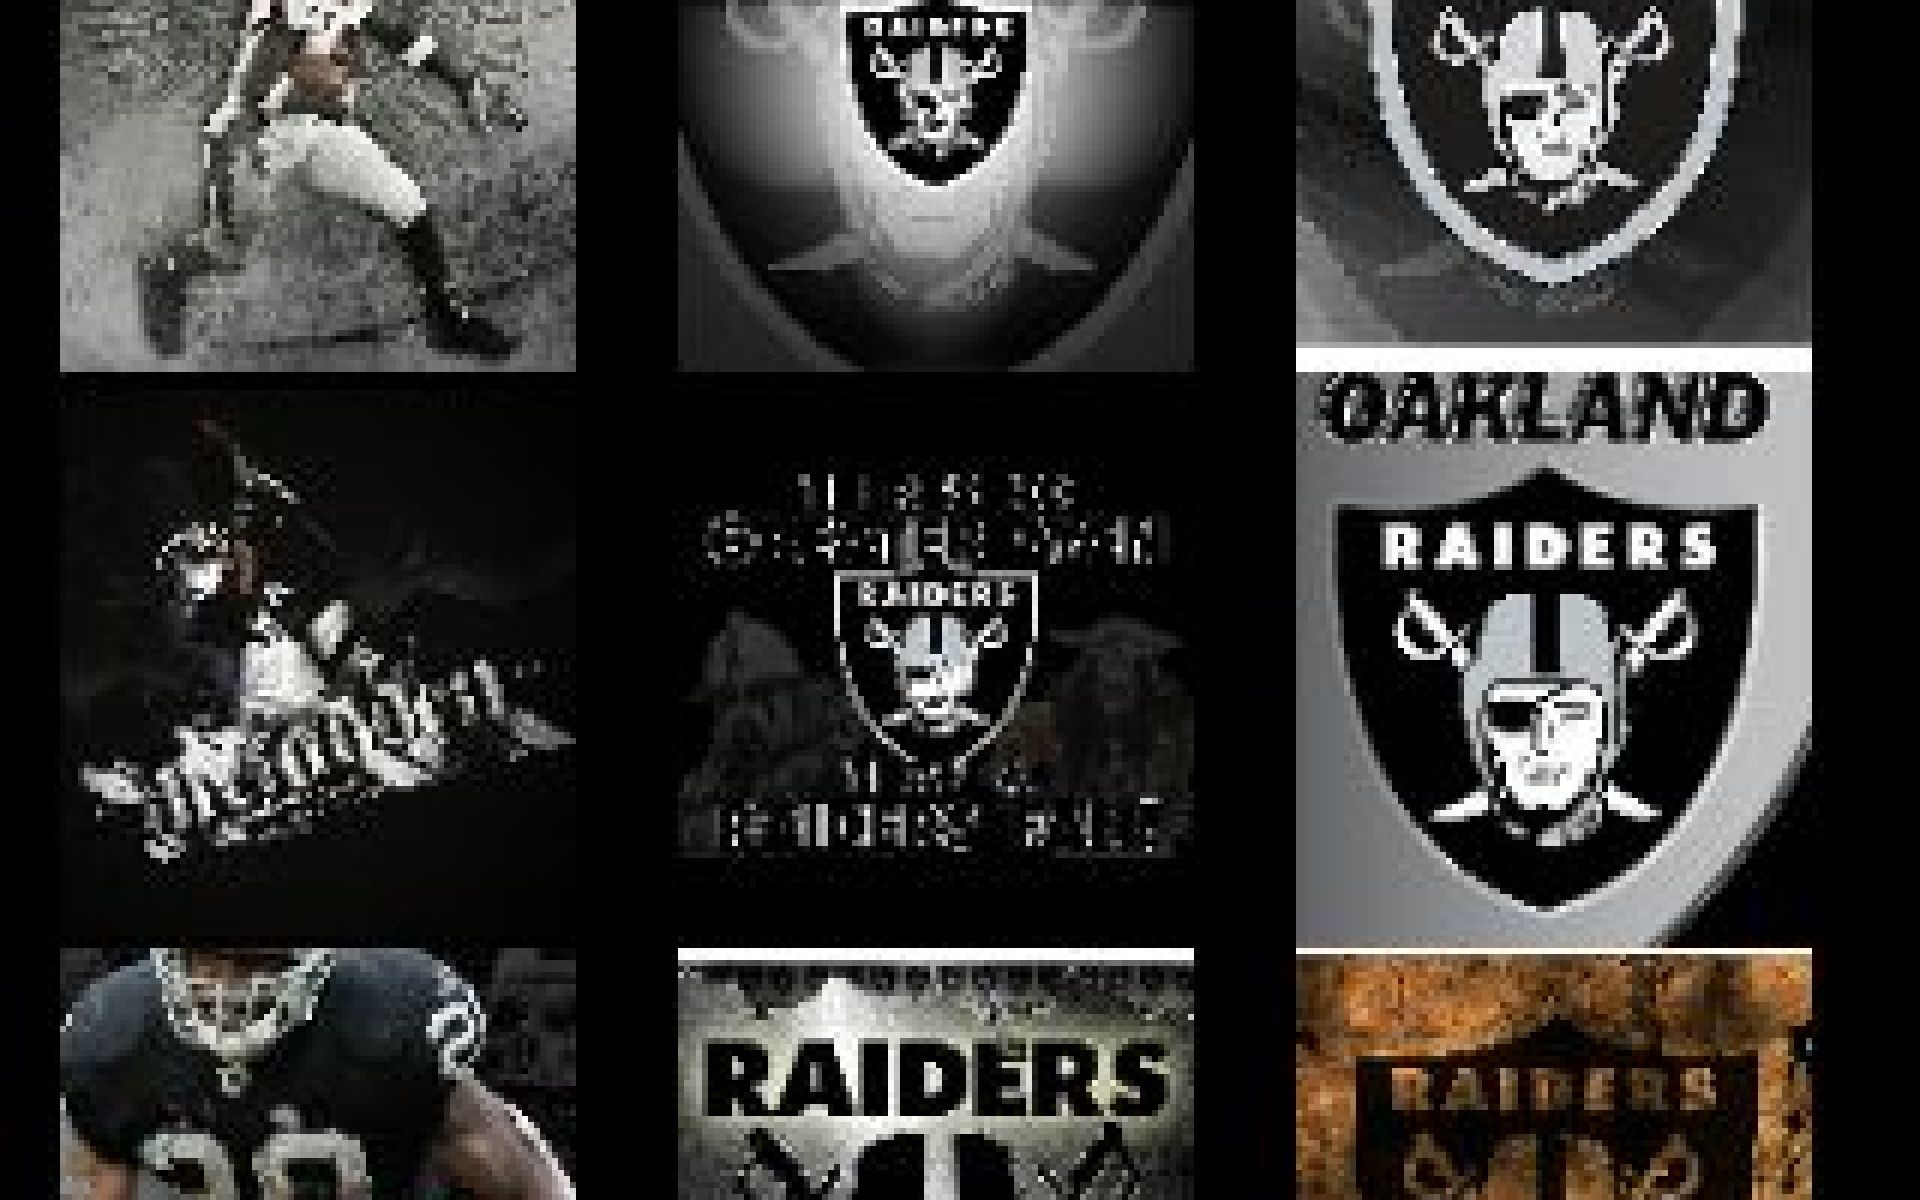 56 Oakland Raiders Pictures